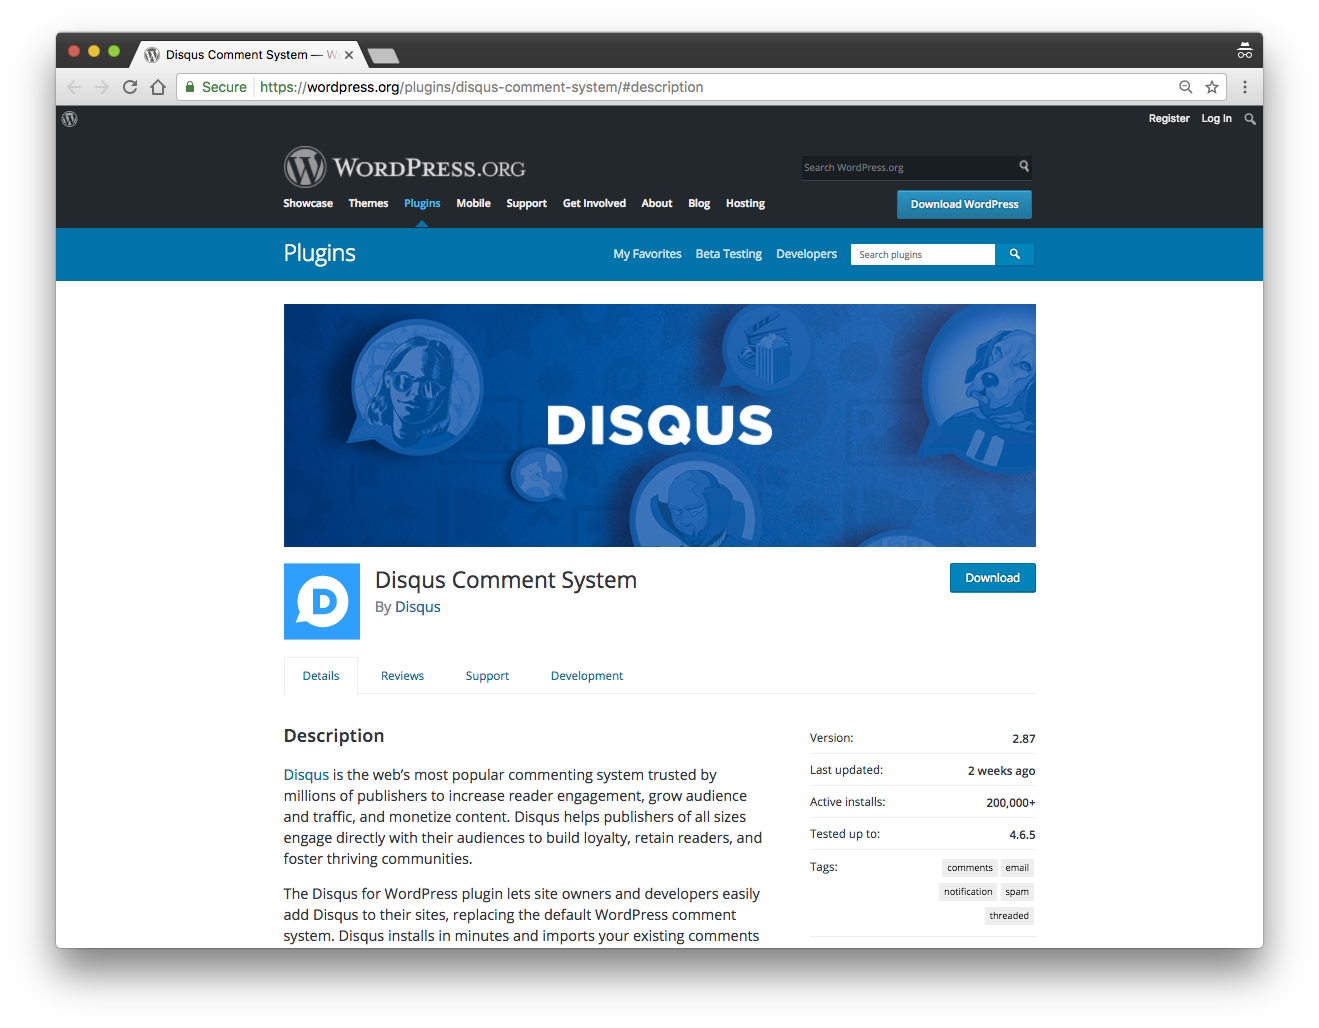 disqus-wordpress-plugin-page-2.png